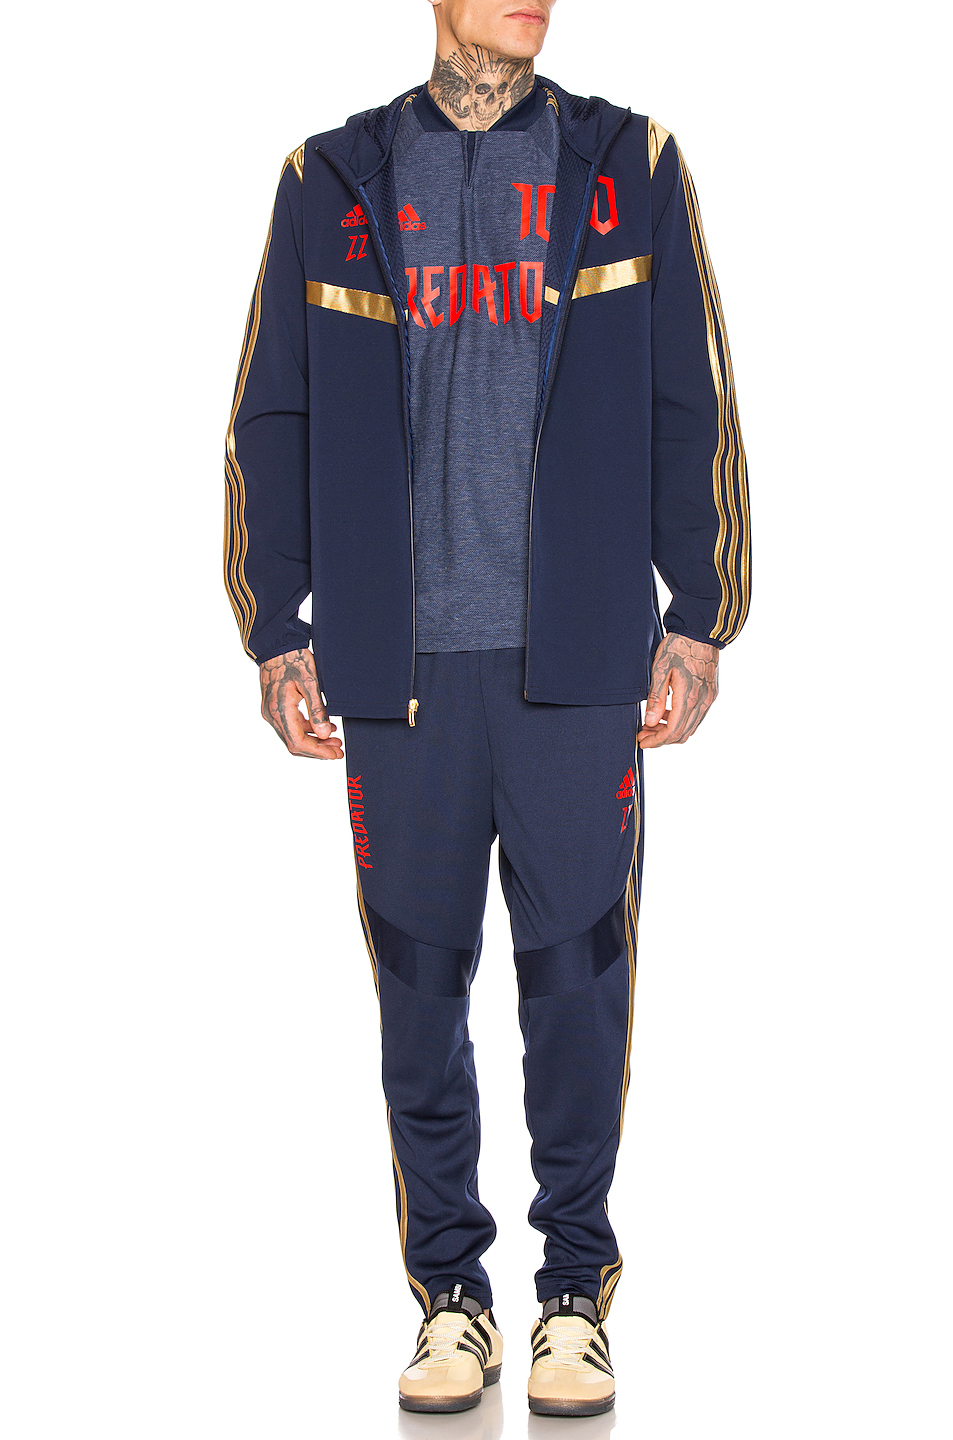 Predator Zidane Hooded Jacket, adidas Football